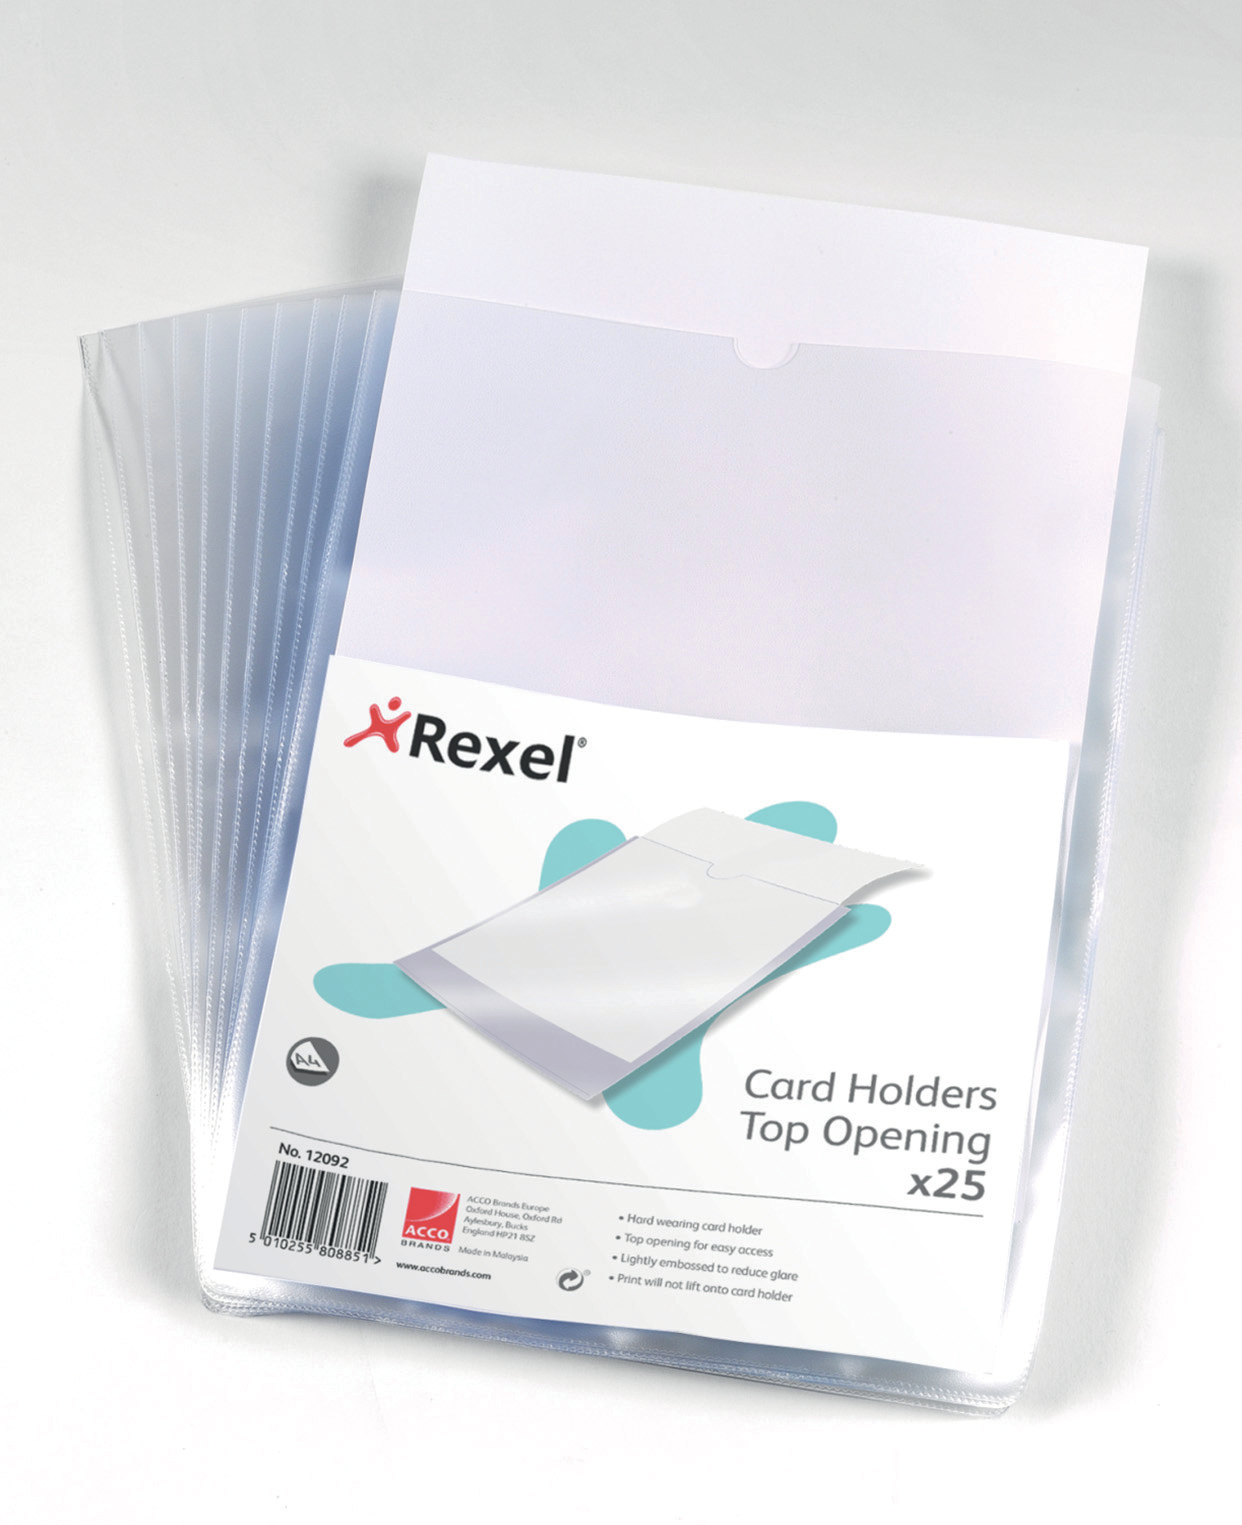 Card Holders Rexel Nyrex Card Holder Polypropylene A4 Top Opening Clear (Pack 25) 12092